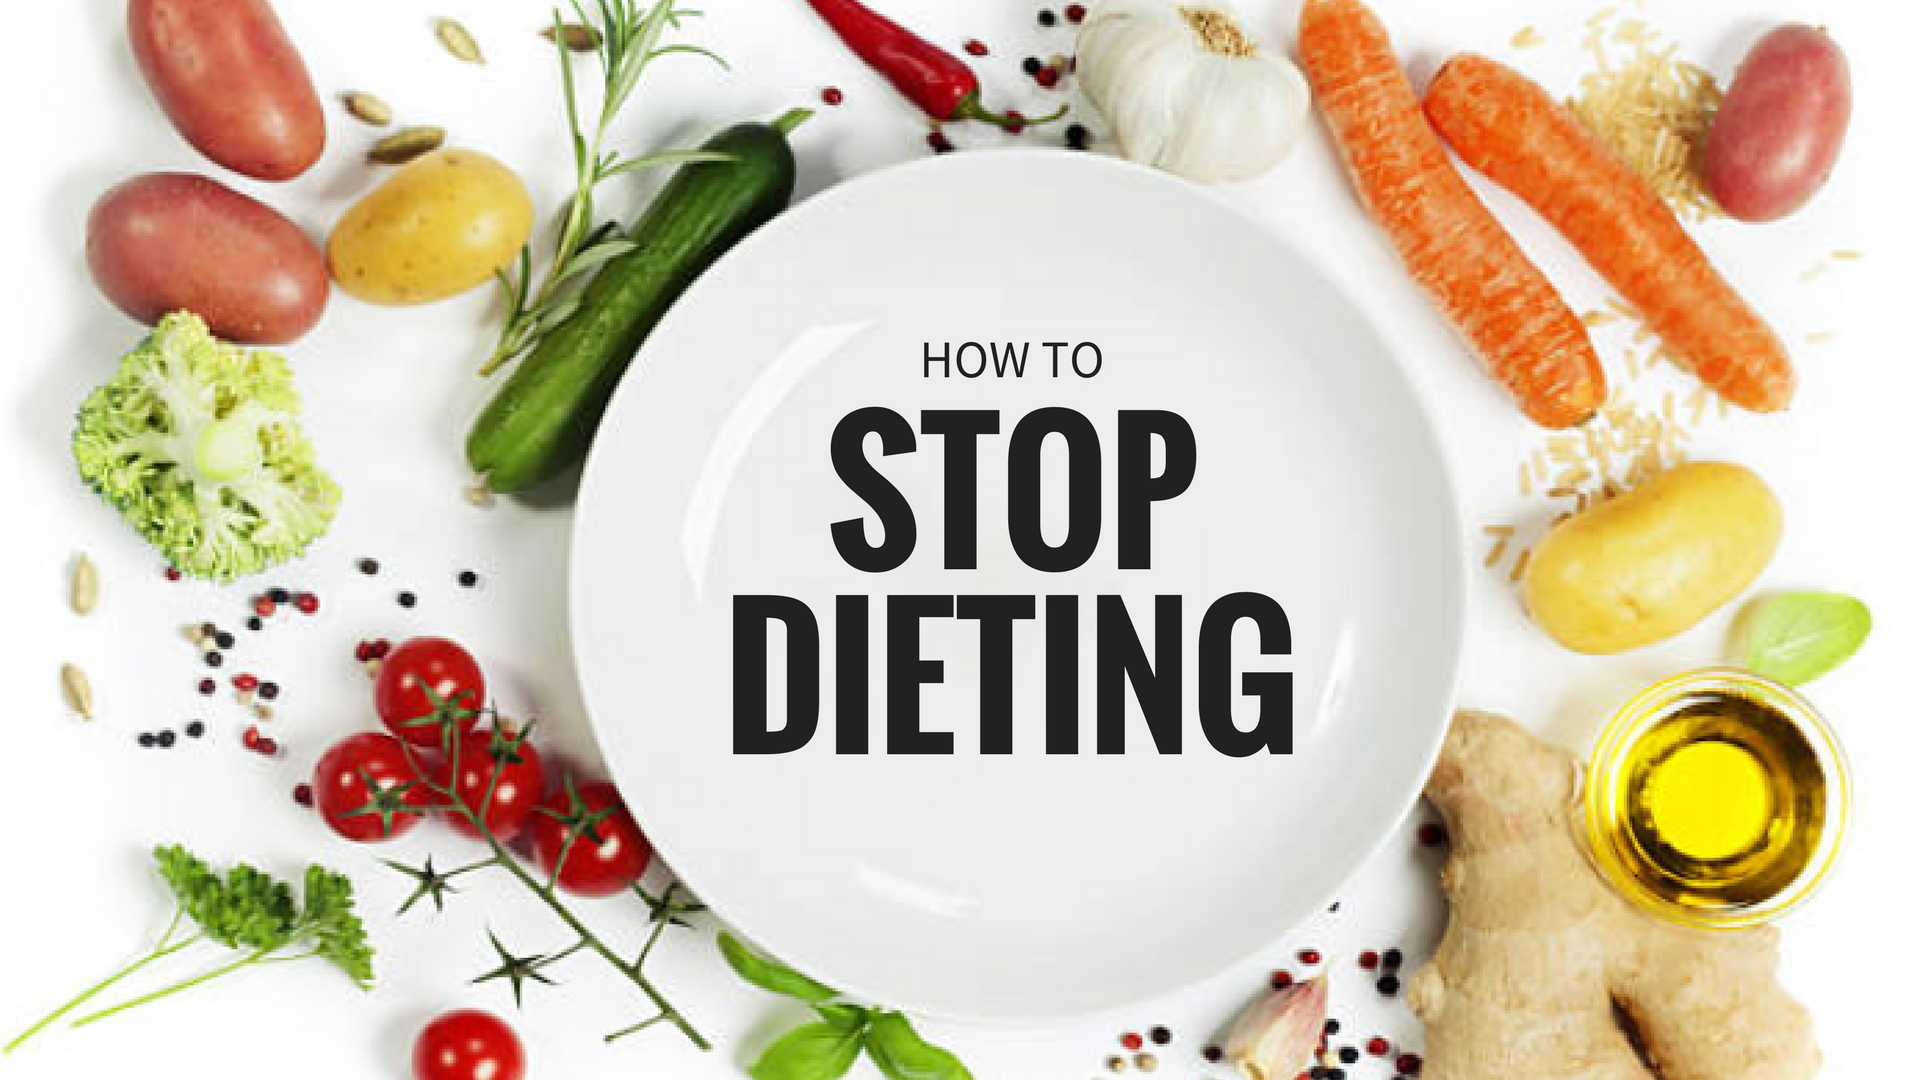 How to Stop Dieting | Why You Should Have No Rules With Food